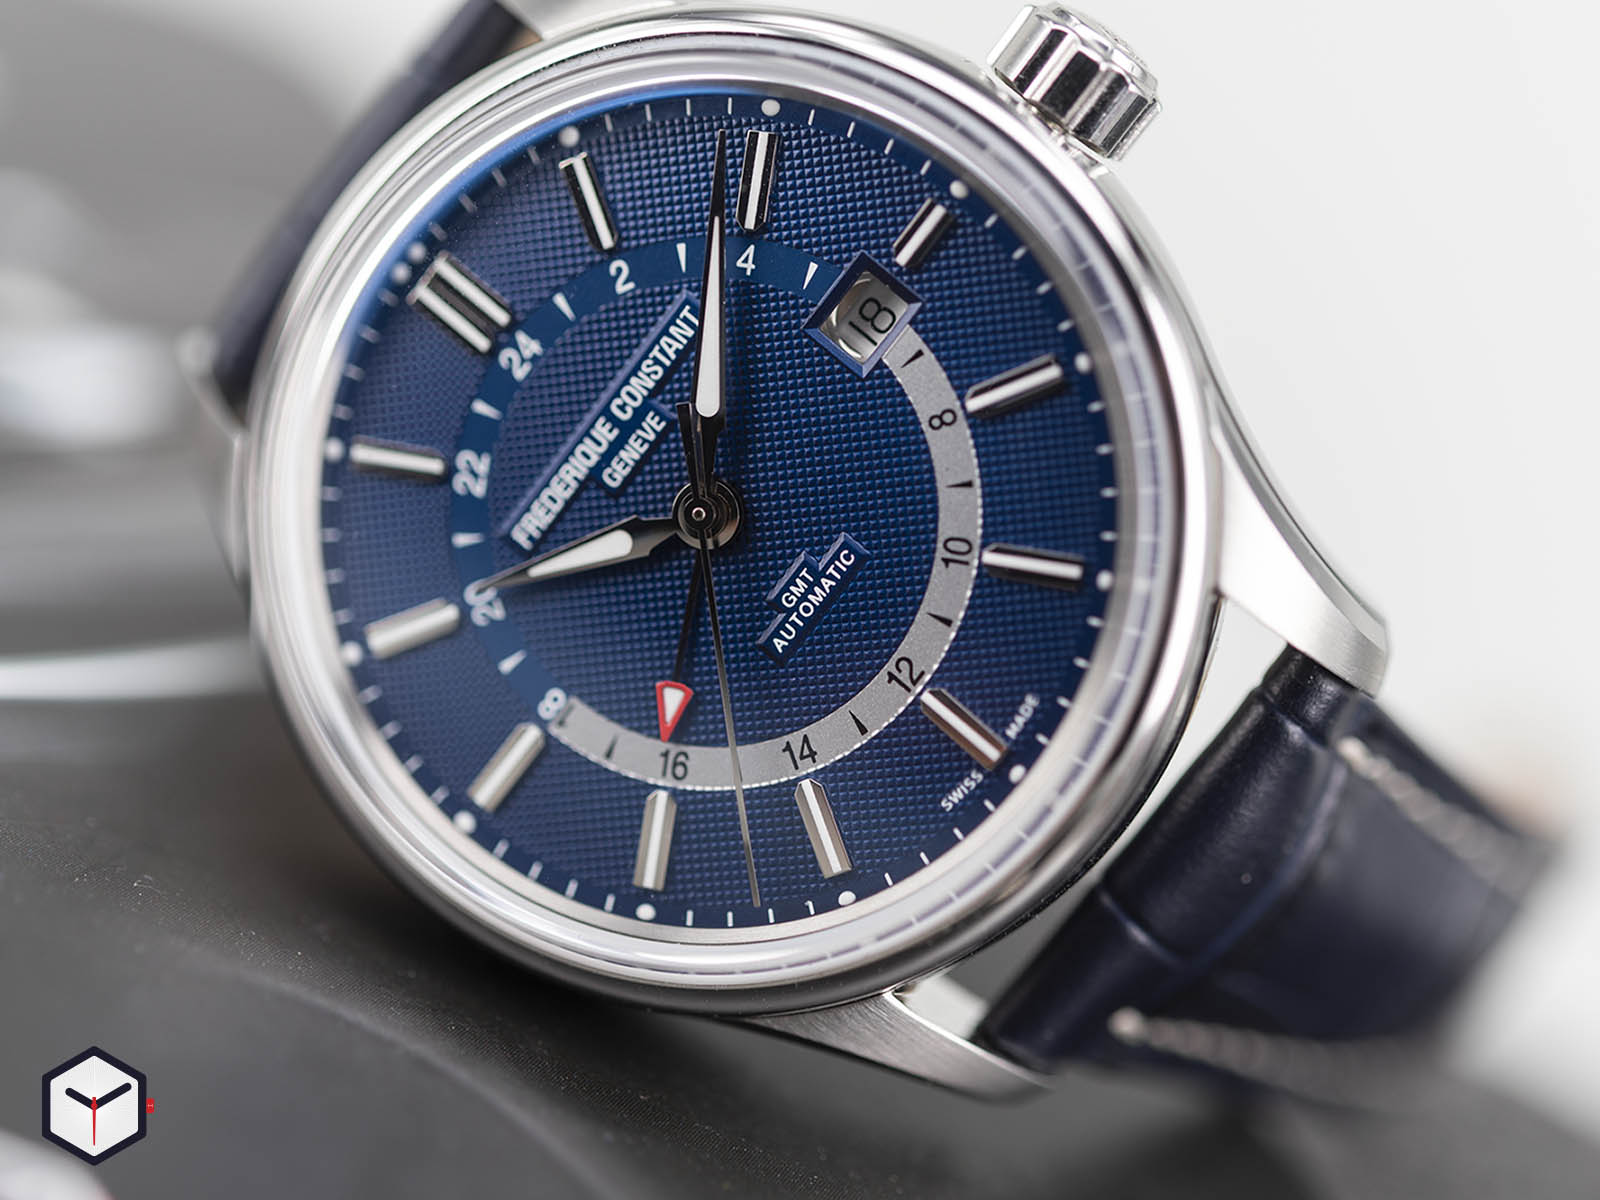 fc-350nt4h6-frederique-constant-yacht-timer-gmt-3.jpg